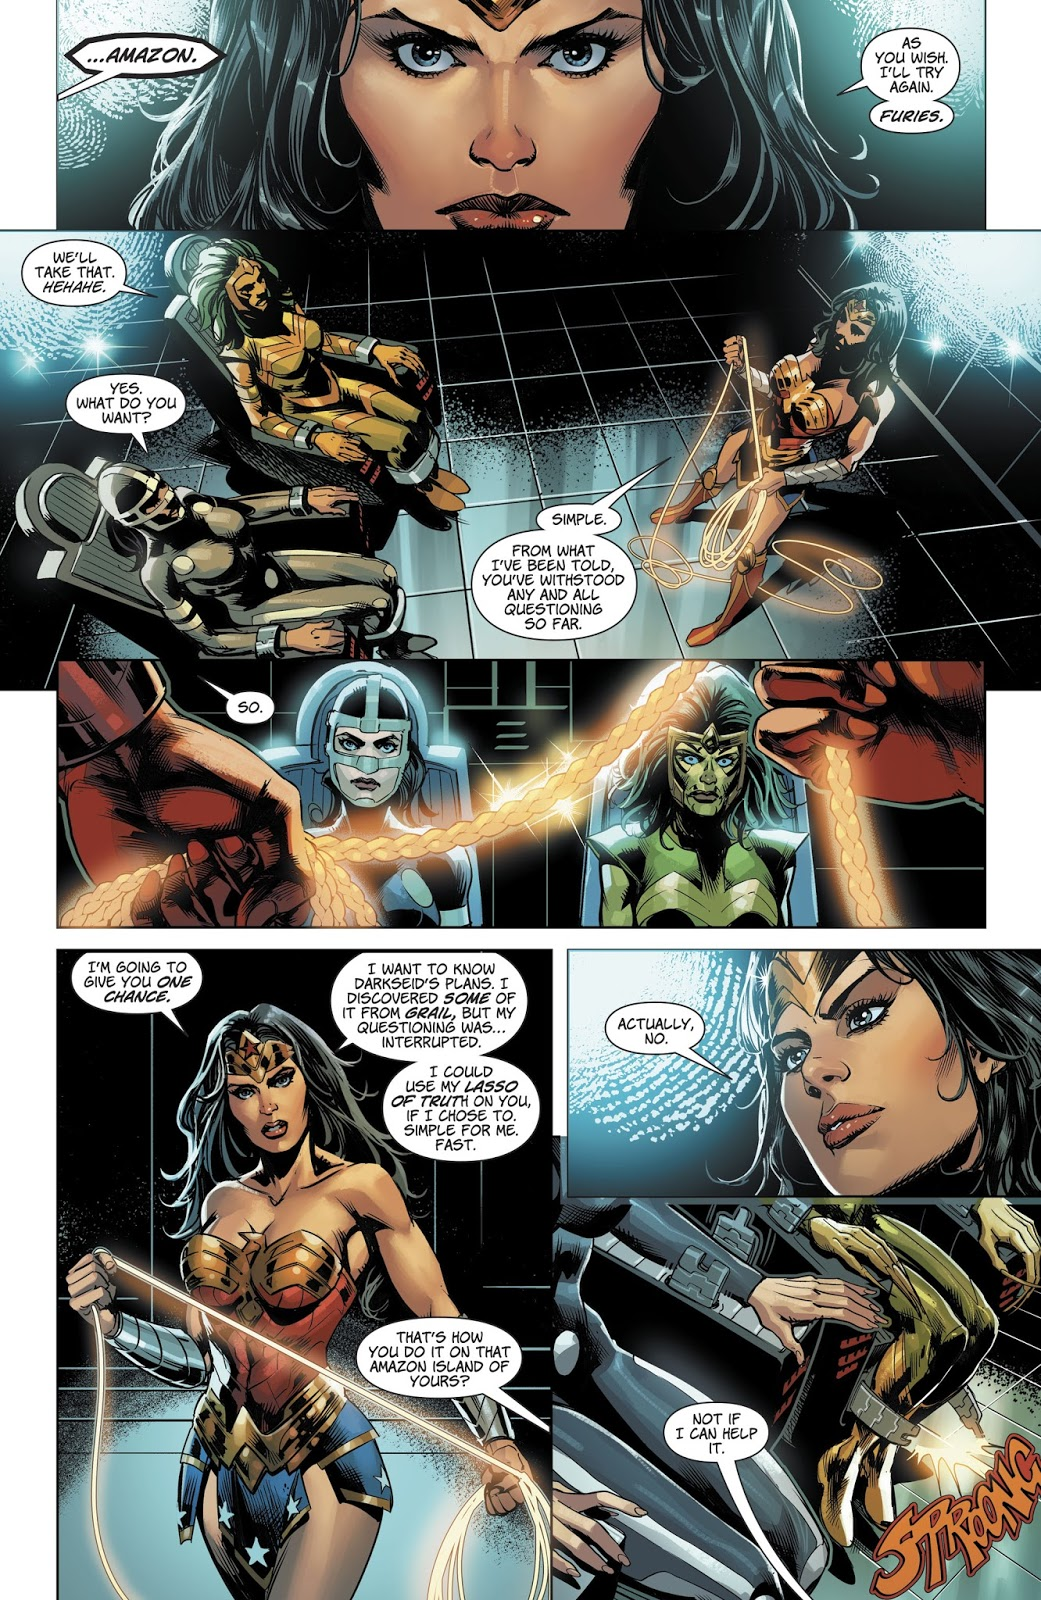 From - Wonder Woman Vol. 5 #43